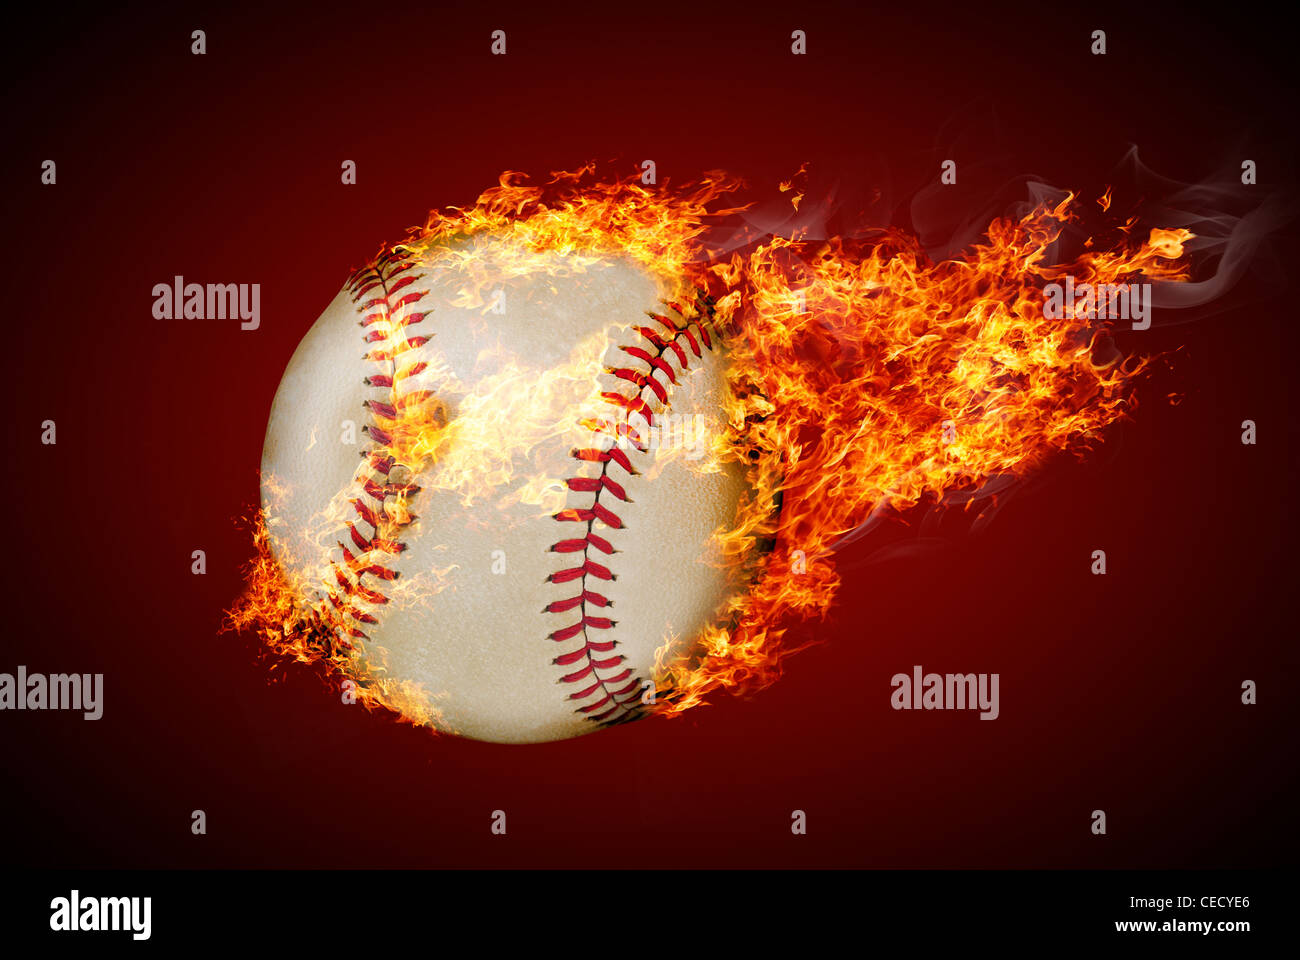 Fliegenden Baseball Ball in Brand Stockbild